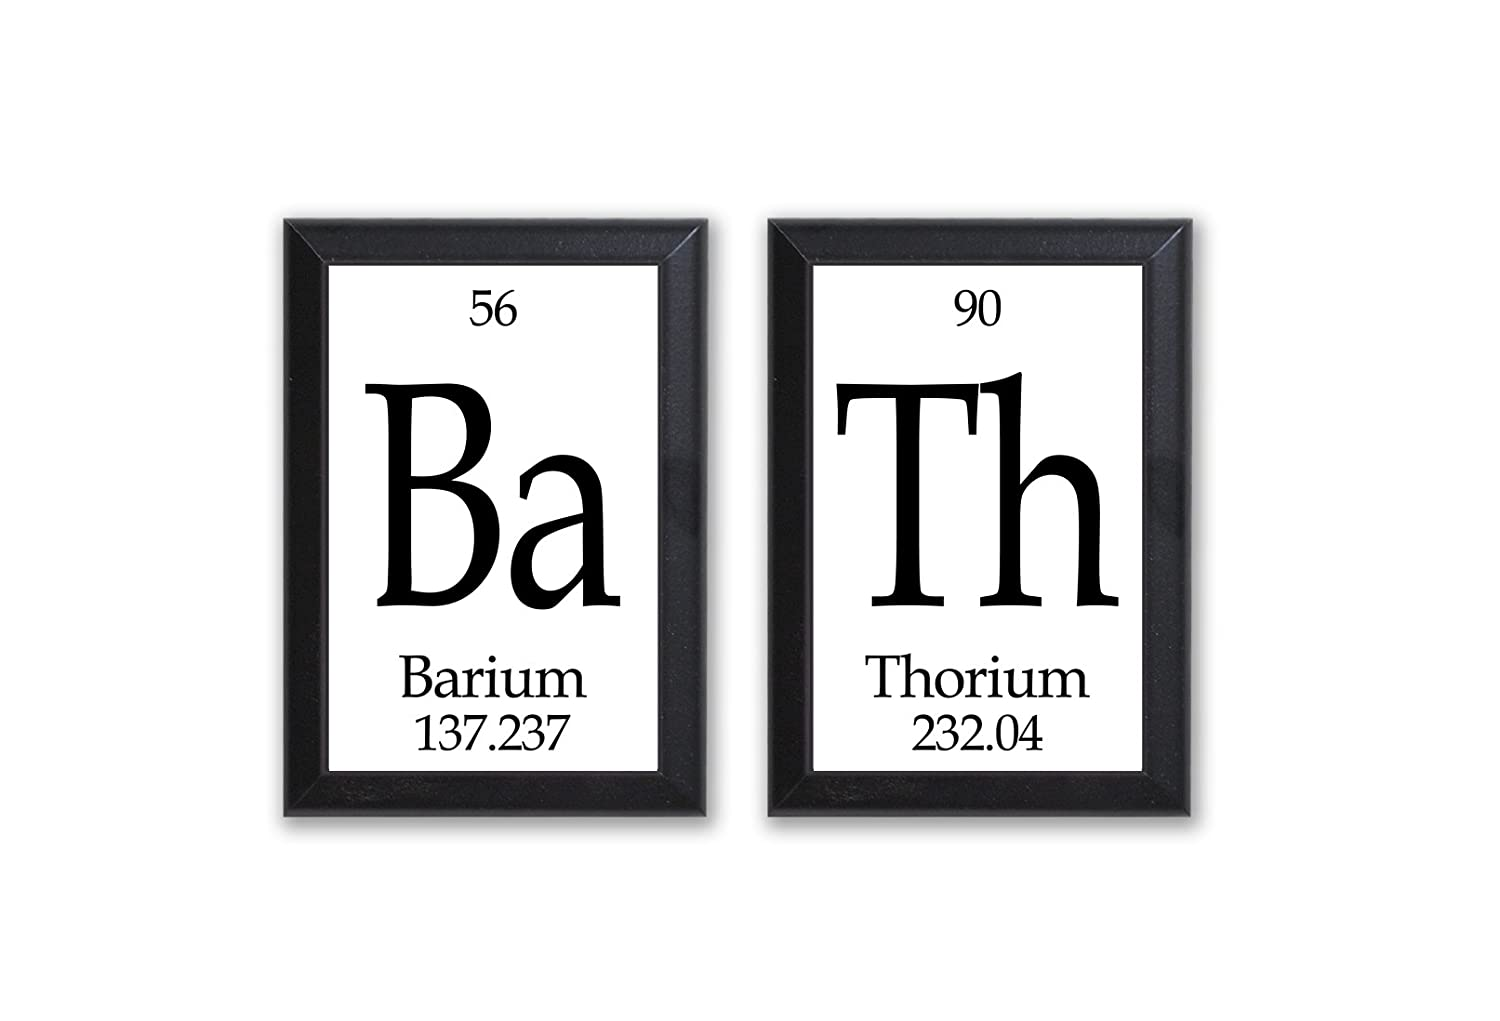 Amazon.com: Bath Periodic Table of Elements Plaque - 2 Piece Set ...